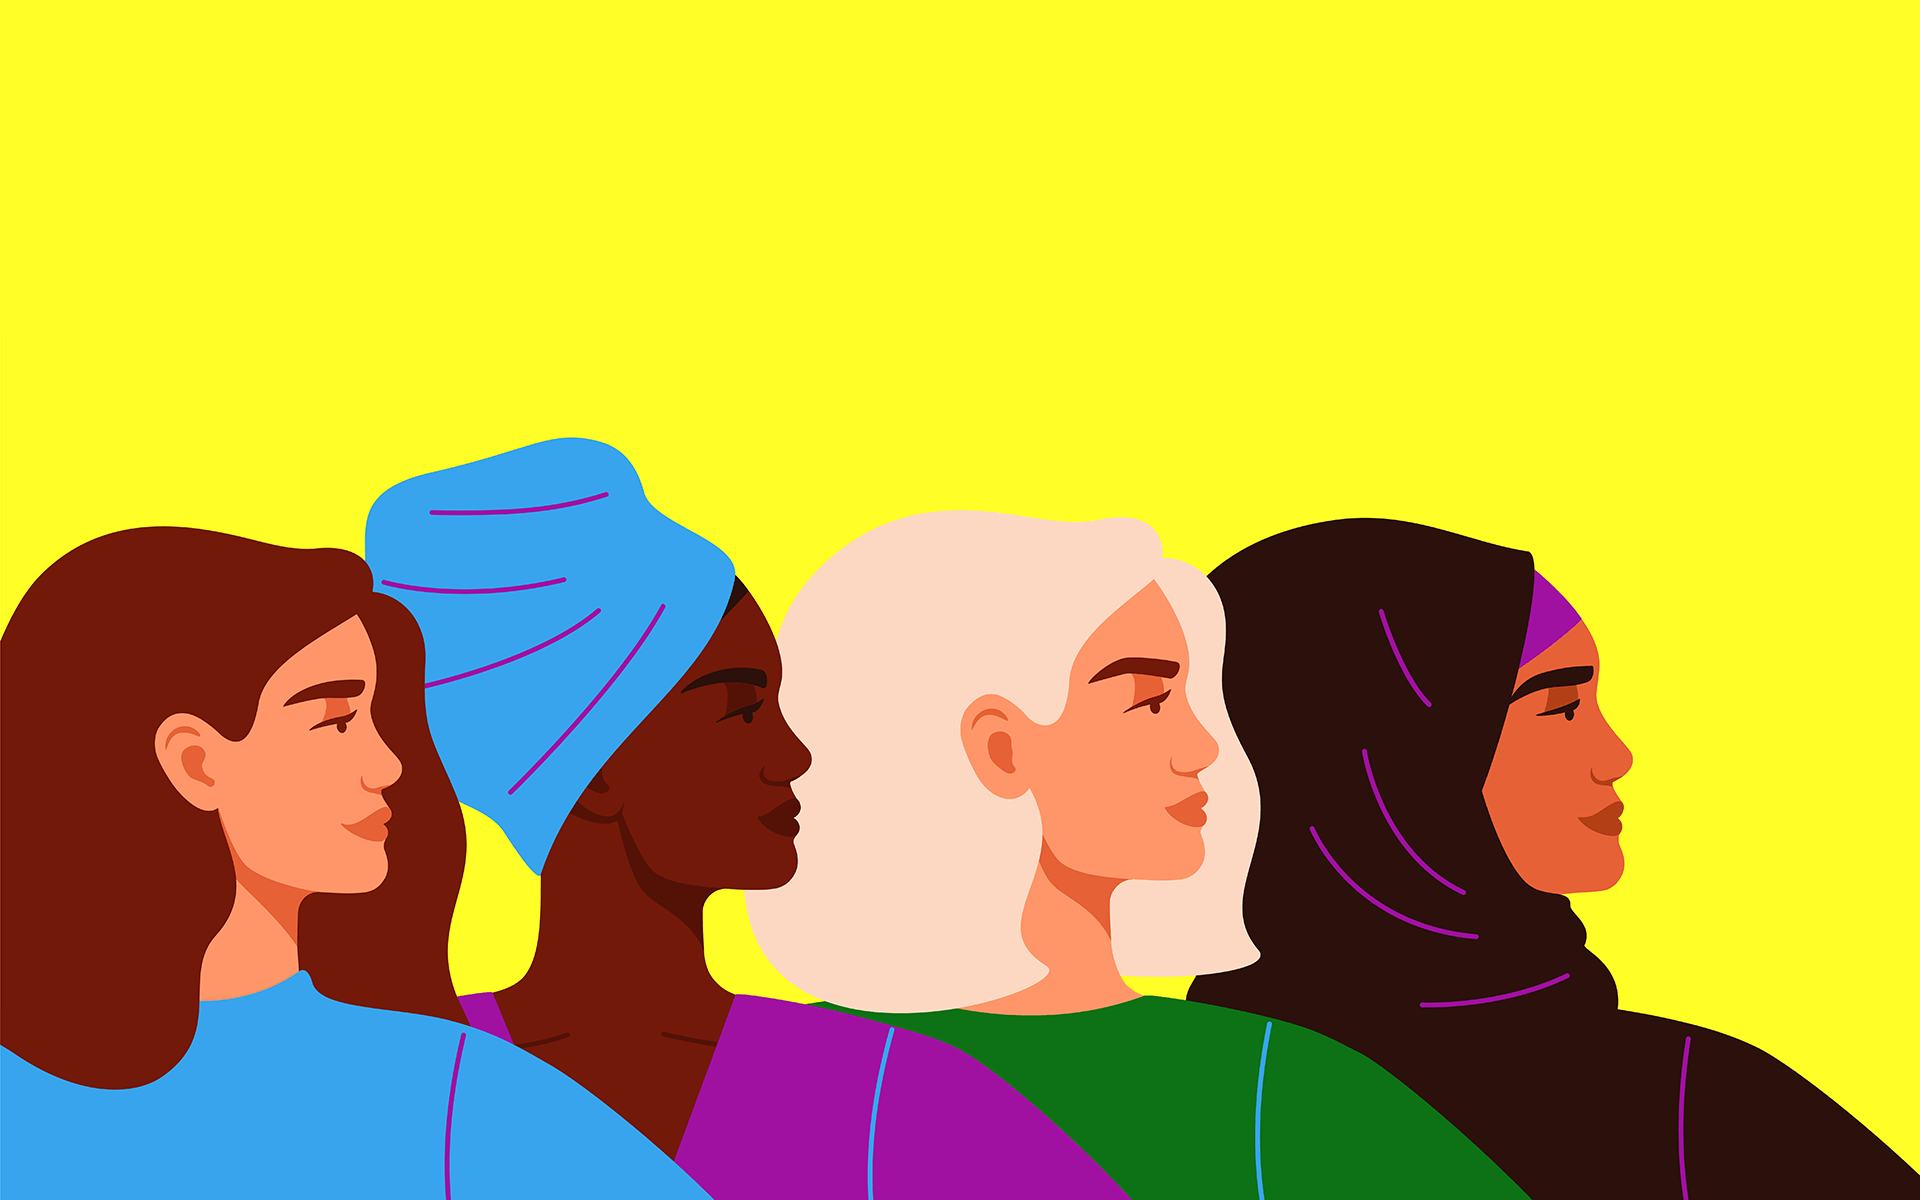 An illustration of the profile of four diverse women from the shoulder-up. All are looking toward the right of the frame and the background is yellow.